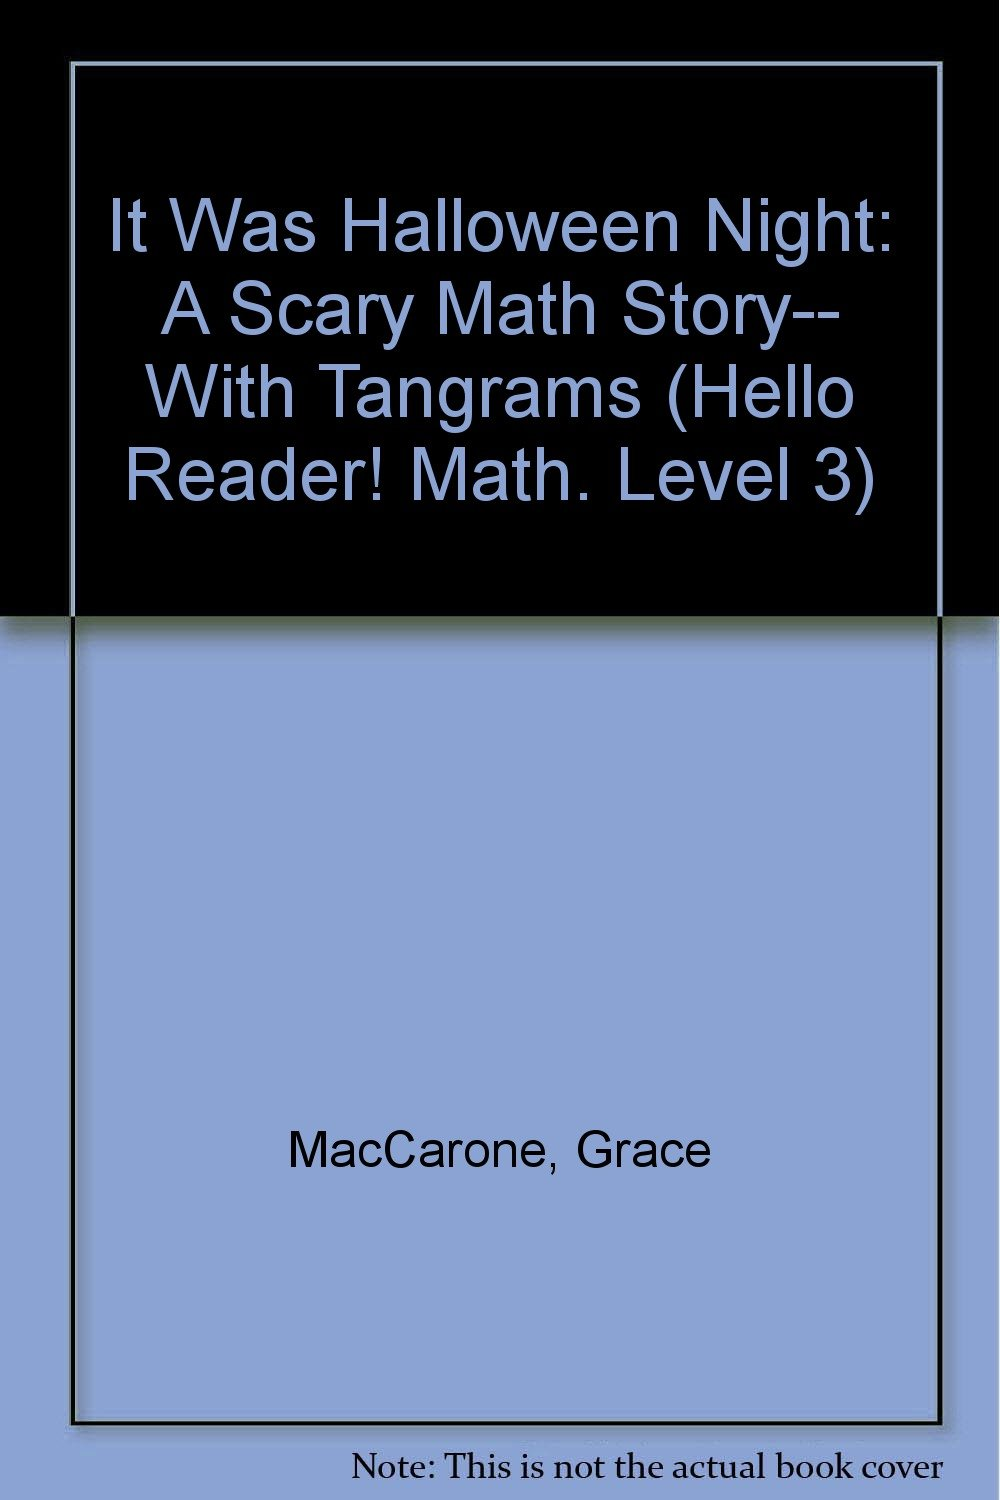 it was halloween night a scary math story tangrams hello it was halloween night a scary math story tangrams hello reader math level 3 grace maccarone marilyn burns matthew straub 9780439304719